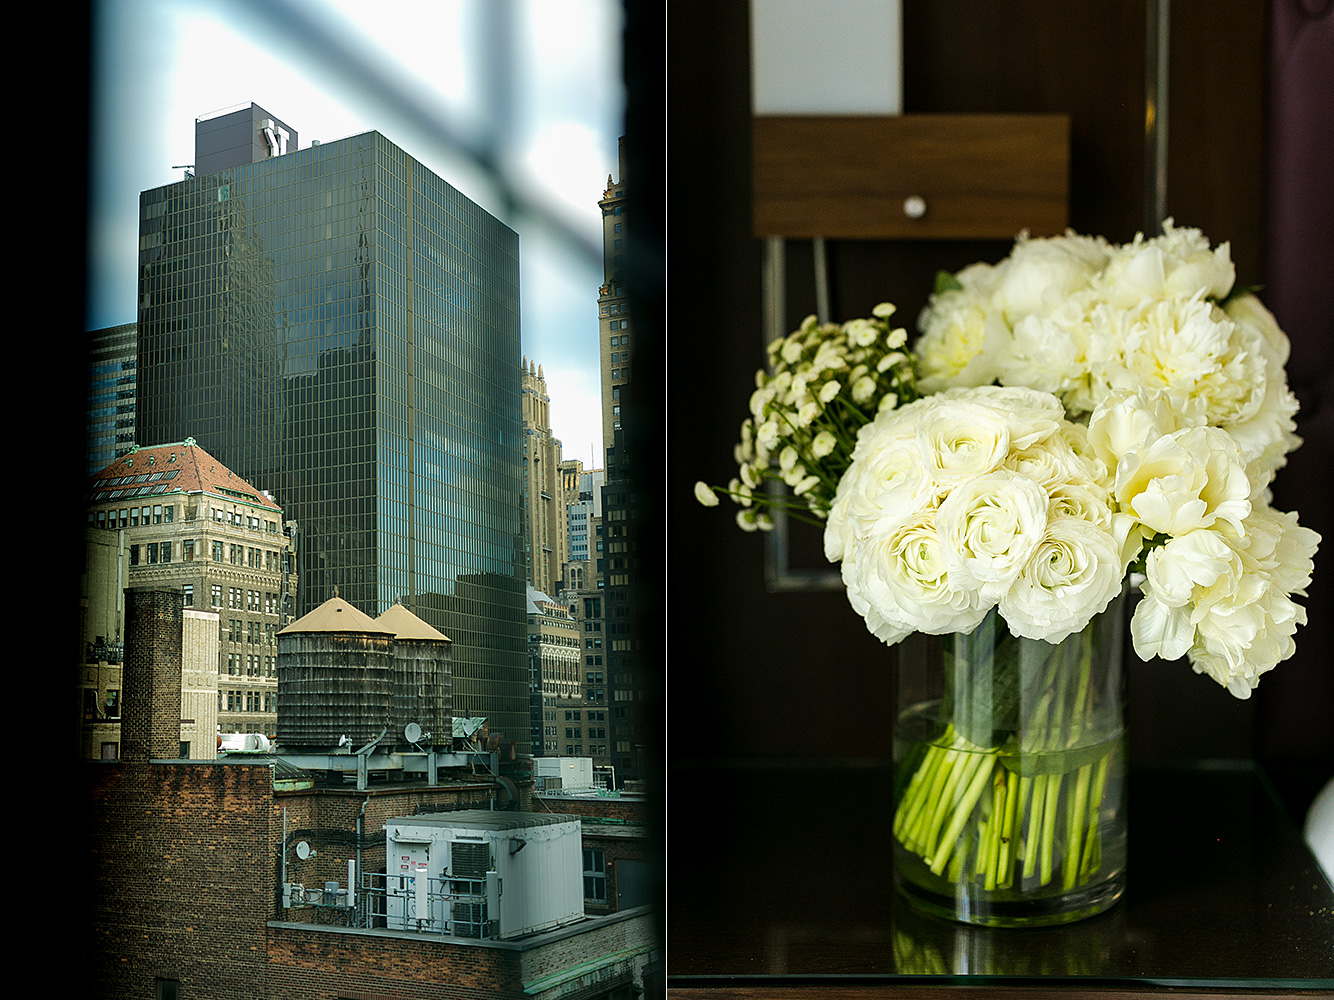 NYC_Wedding_Photographer_DaAd_Wed_Blog_01.jpg